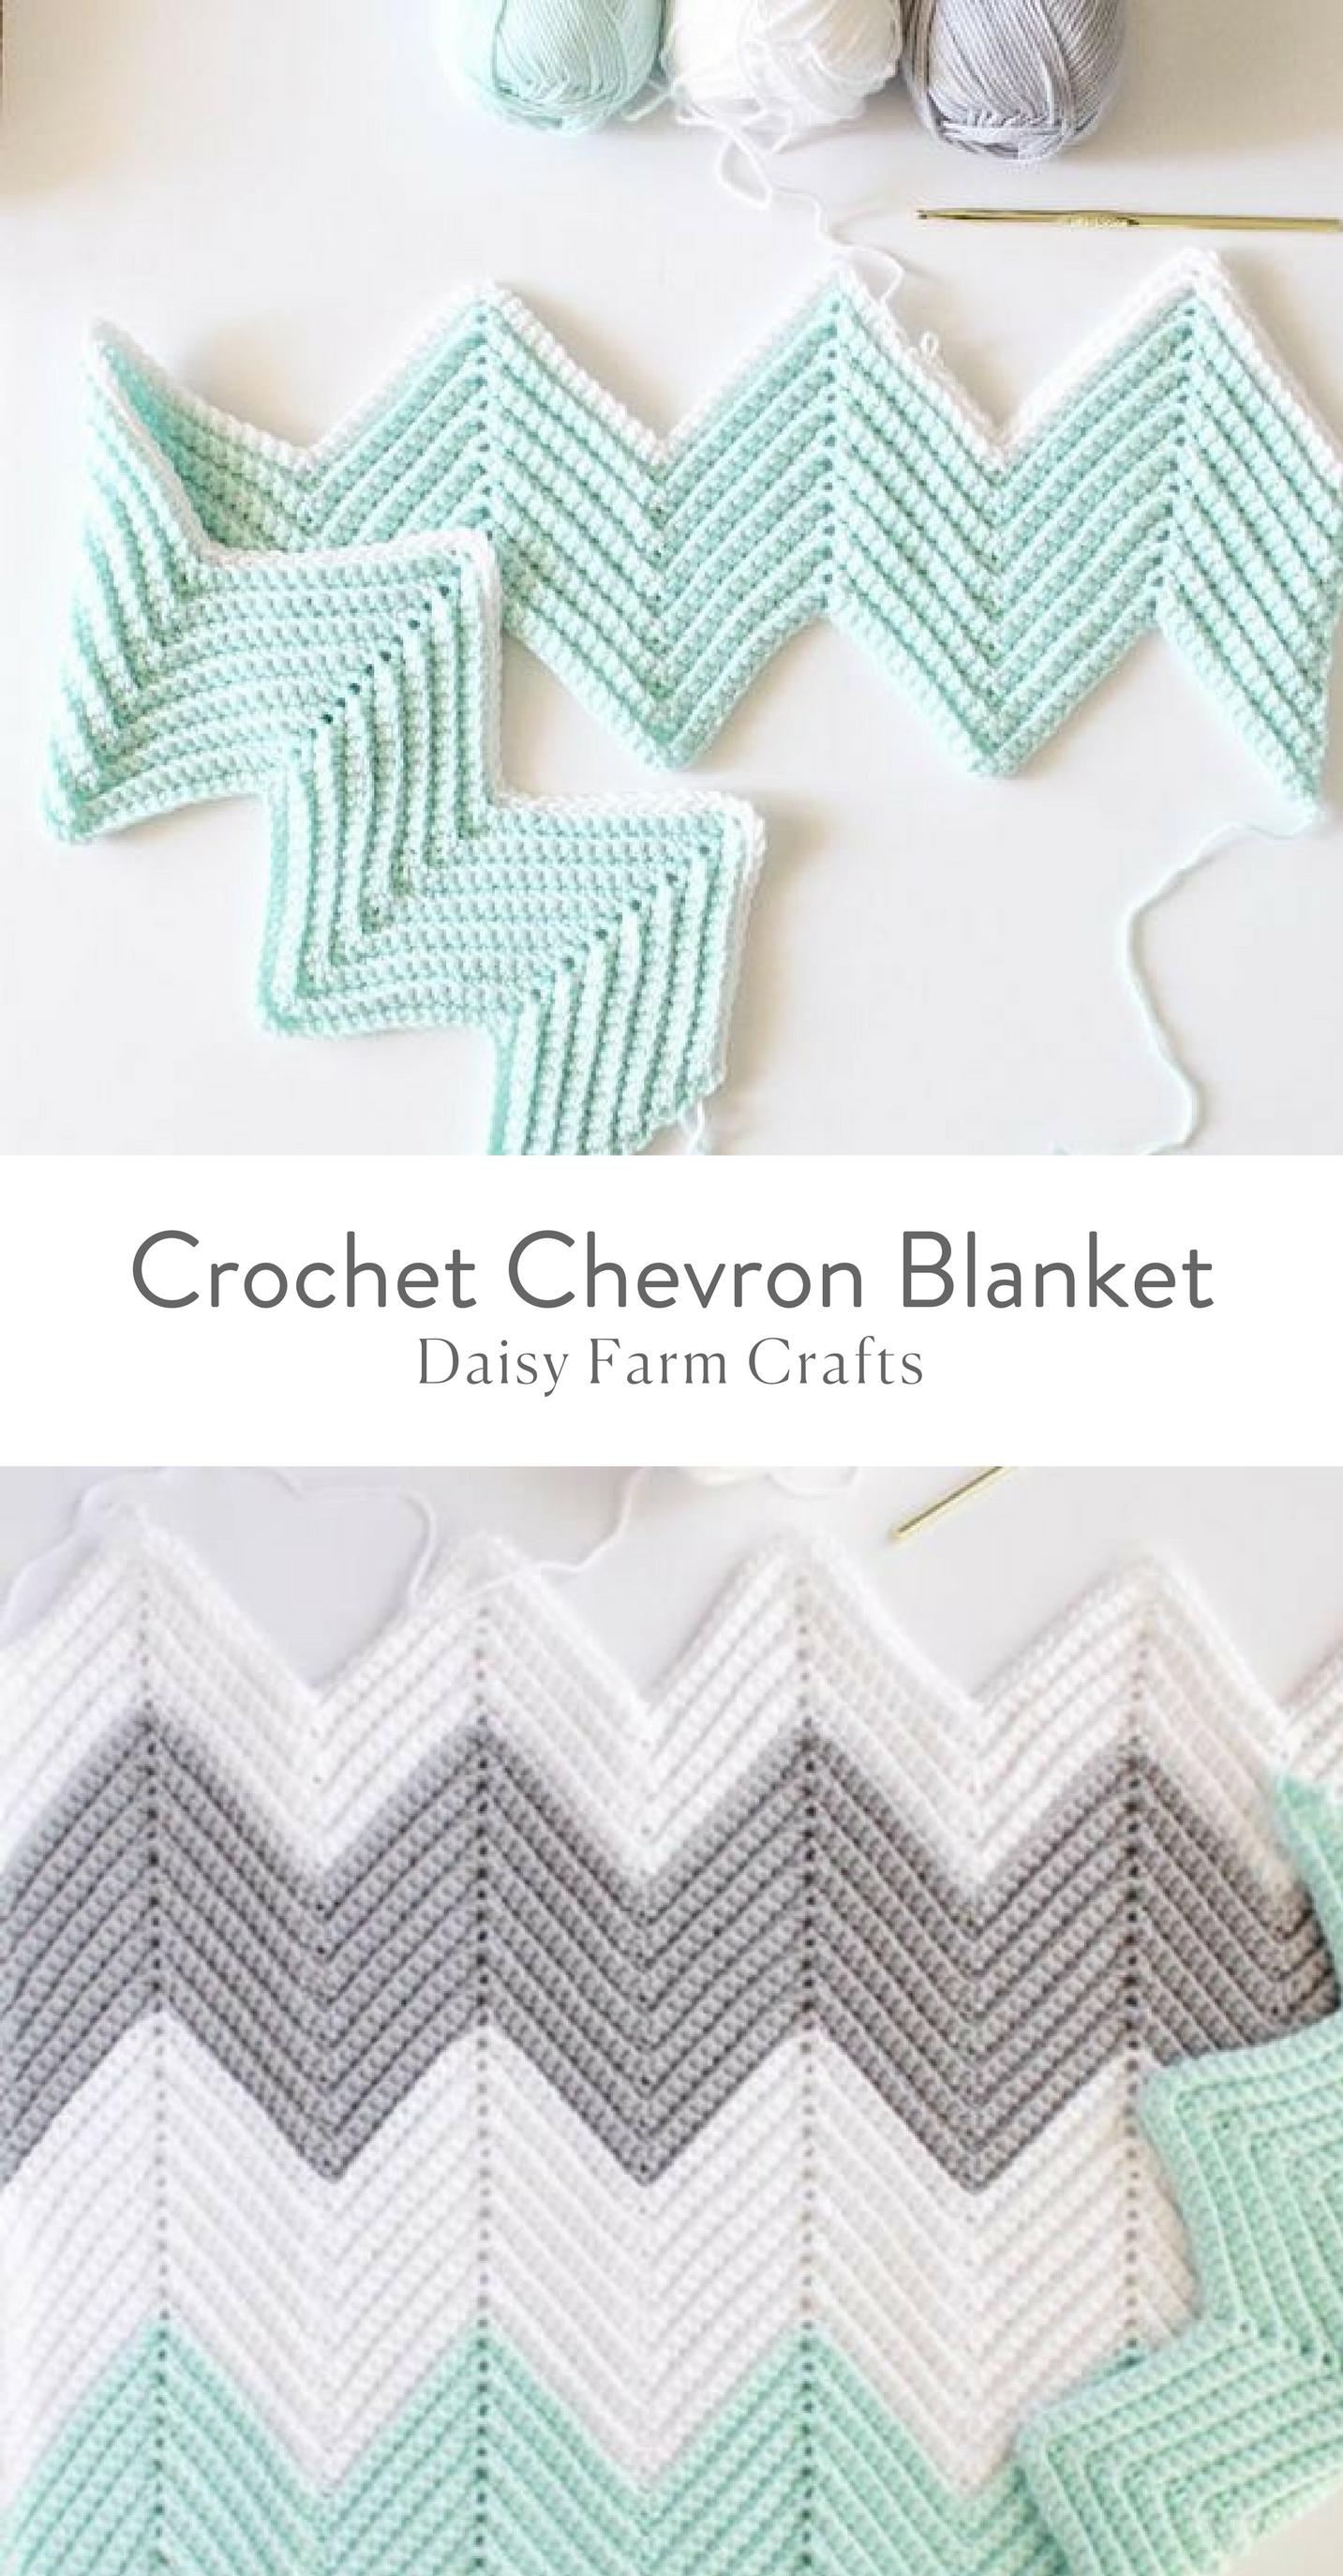 Free Pattern - Crochet Chevron Blanket | Knitting/ Crocheting ...